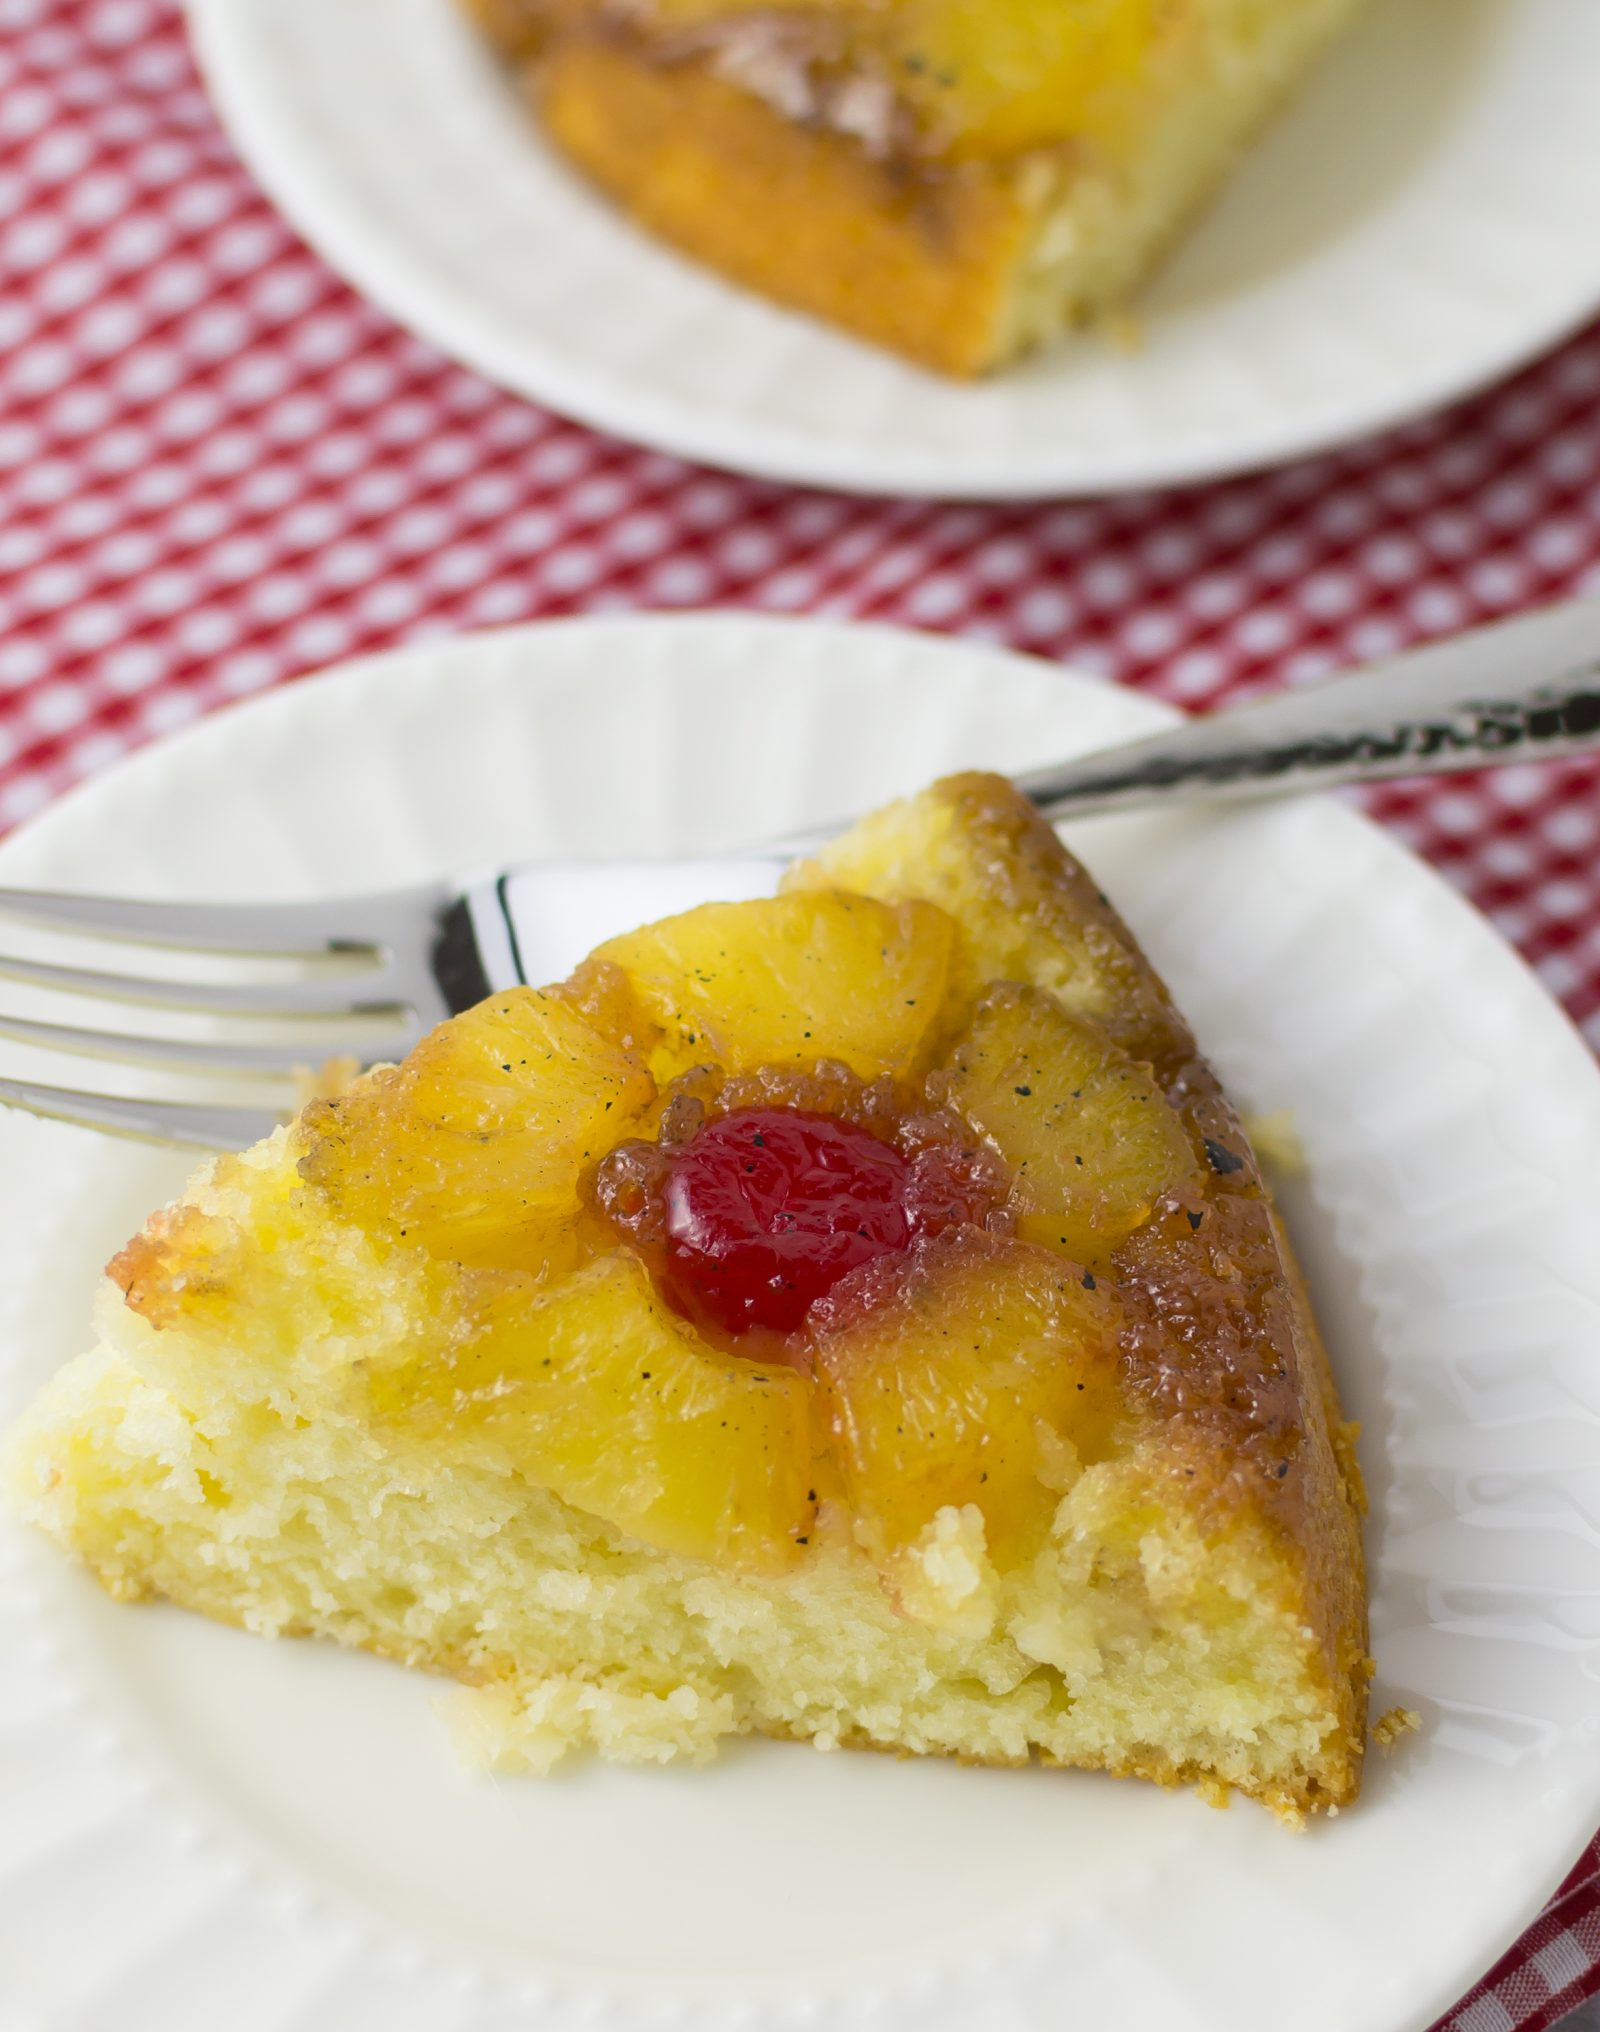 ... pineapple upside down cake caramelized pineapple upside down cake